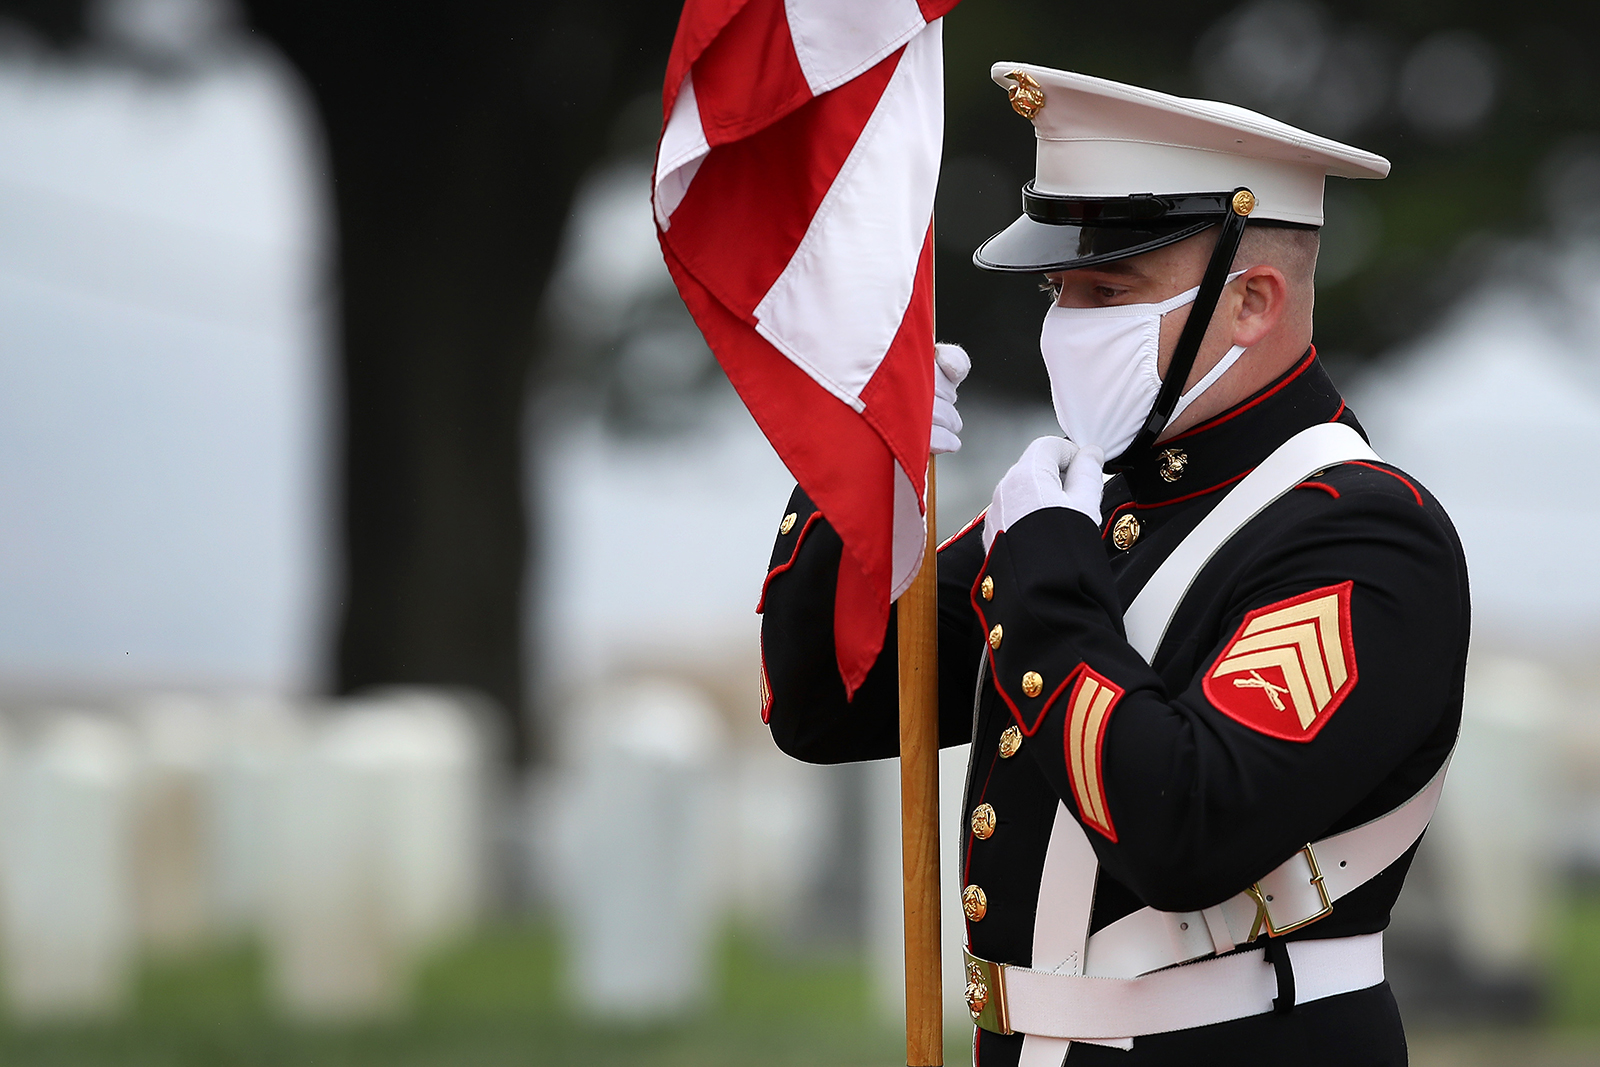 A Marine Color Guard presents colors during a Memorial Day ceremony at Fort Rosecrans National Cemetery on May 25, in San Diego, California.